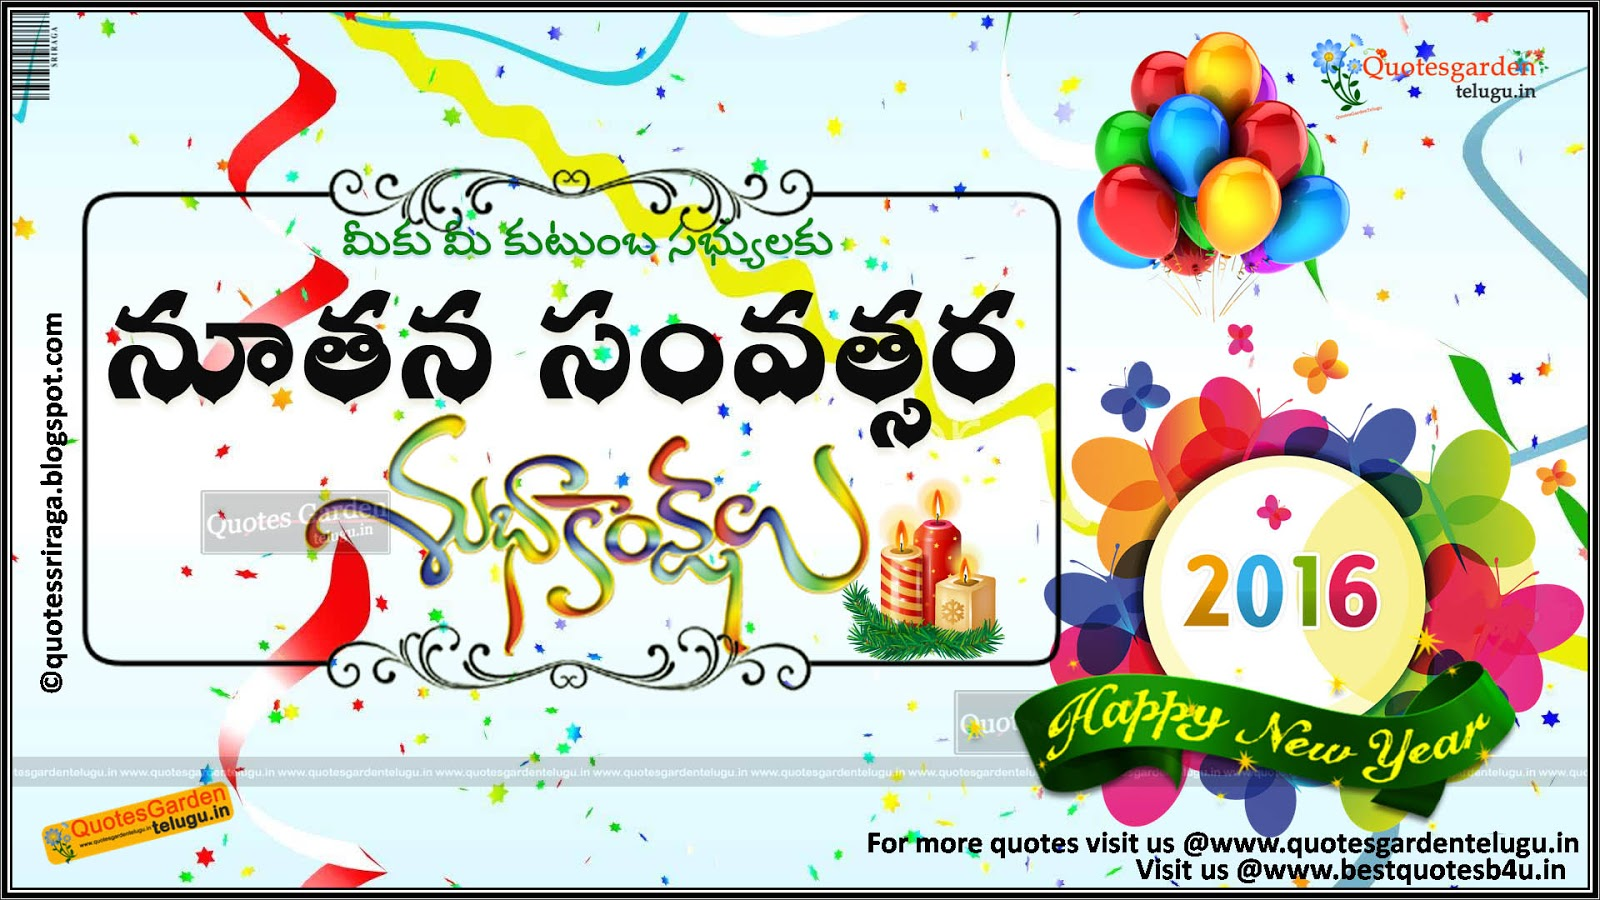 Nice Happy New Year Telugu Greetings Wallpapers Quotes Garden